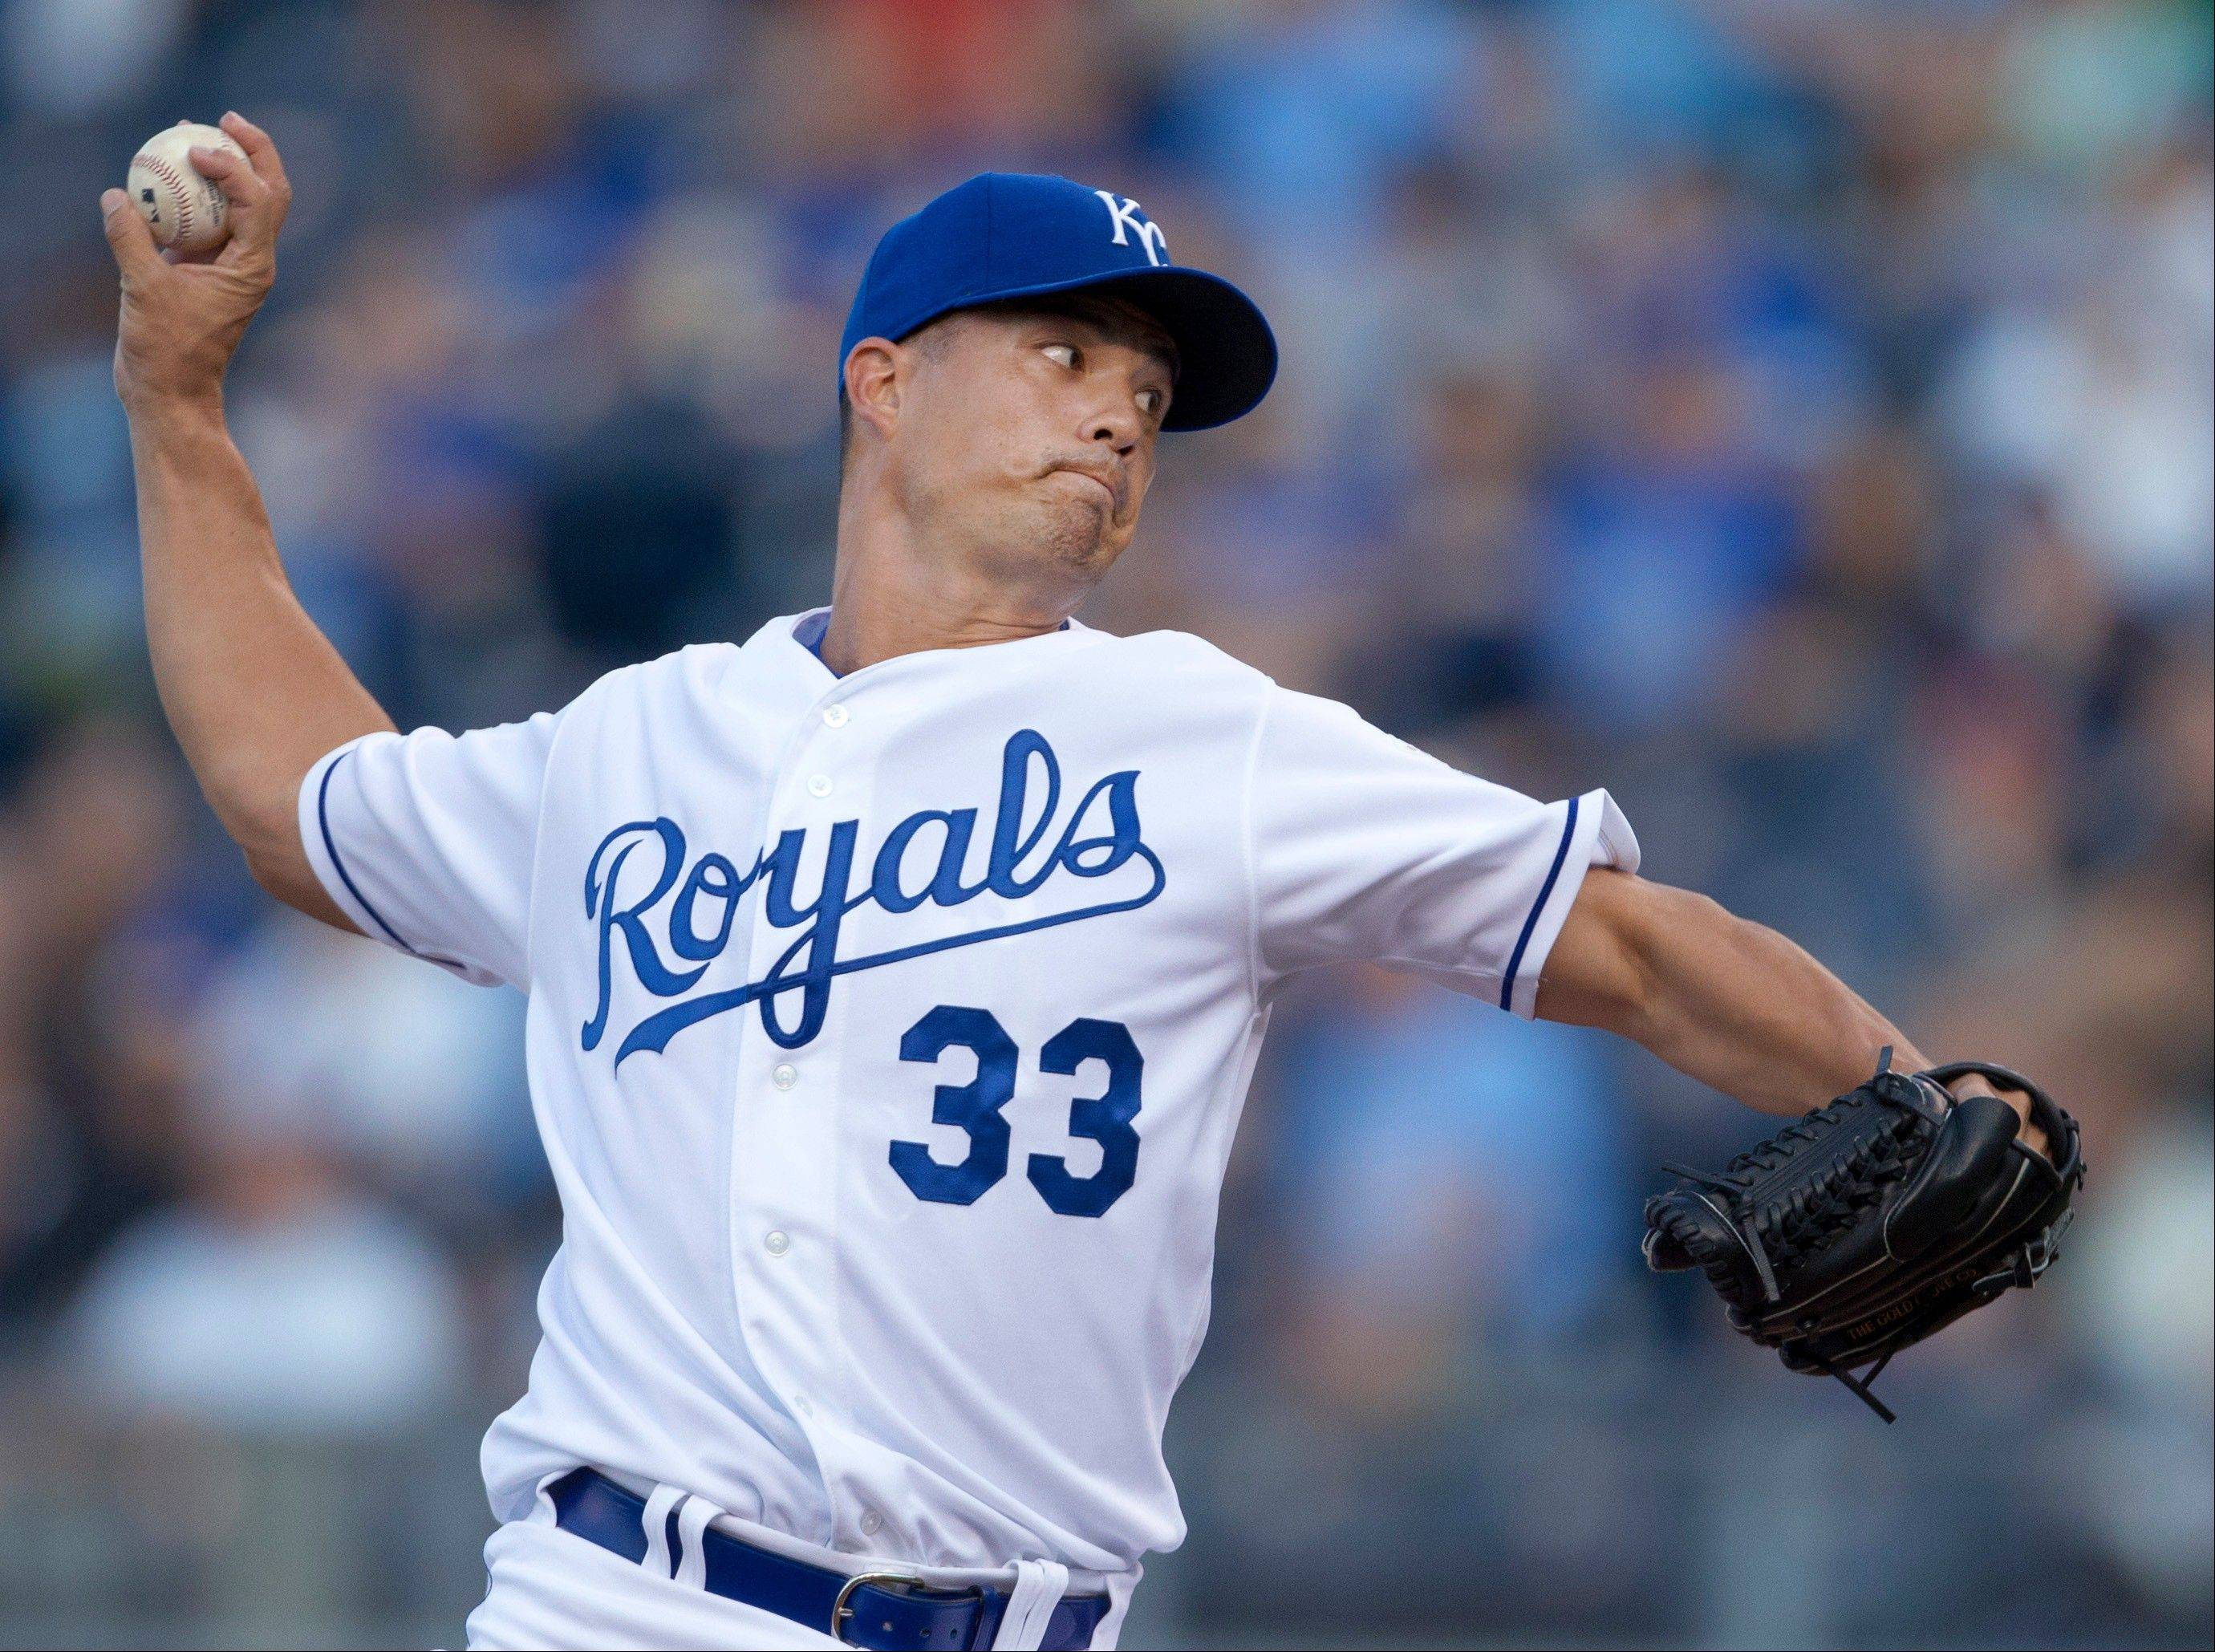 Kansas City Royals starter Jeremy Guthrie pitches to an Oakland Athletics batter Tuesday during the first inning.